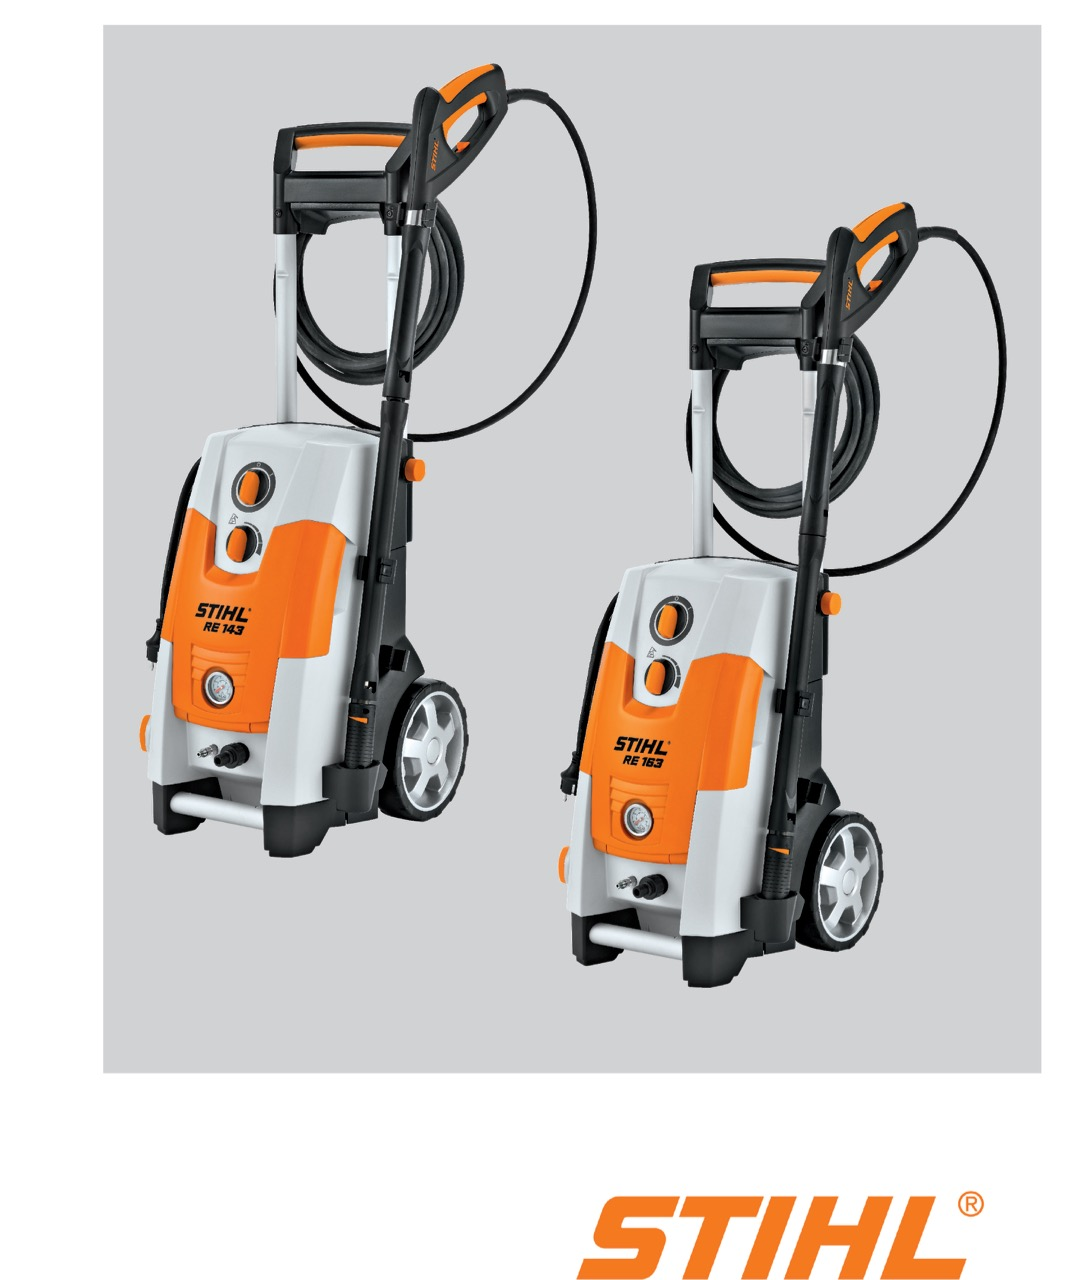 Three STIHL high-pressure cleaners are up for grabs to members who are actively engaged in the uploading and sharing of content on Cycling South Africa's community platform, beSpoke. Photo: Supplied